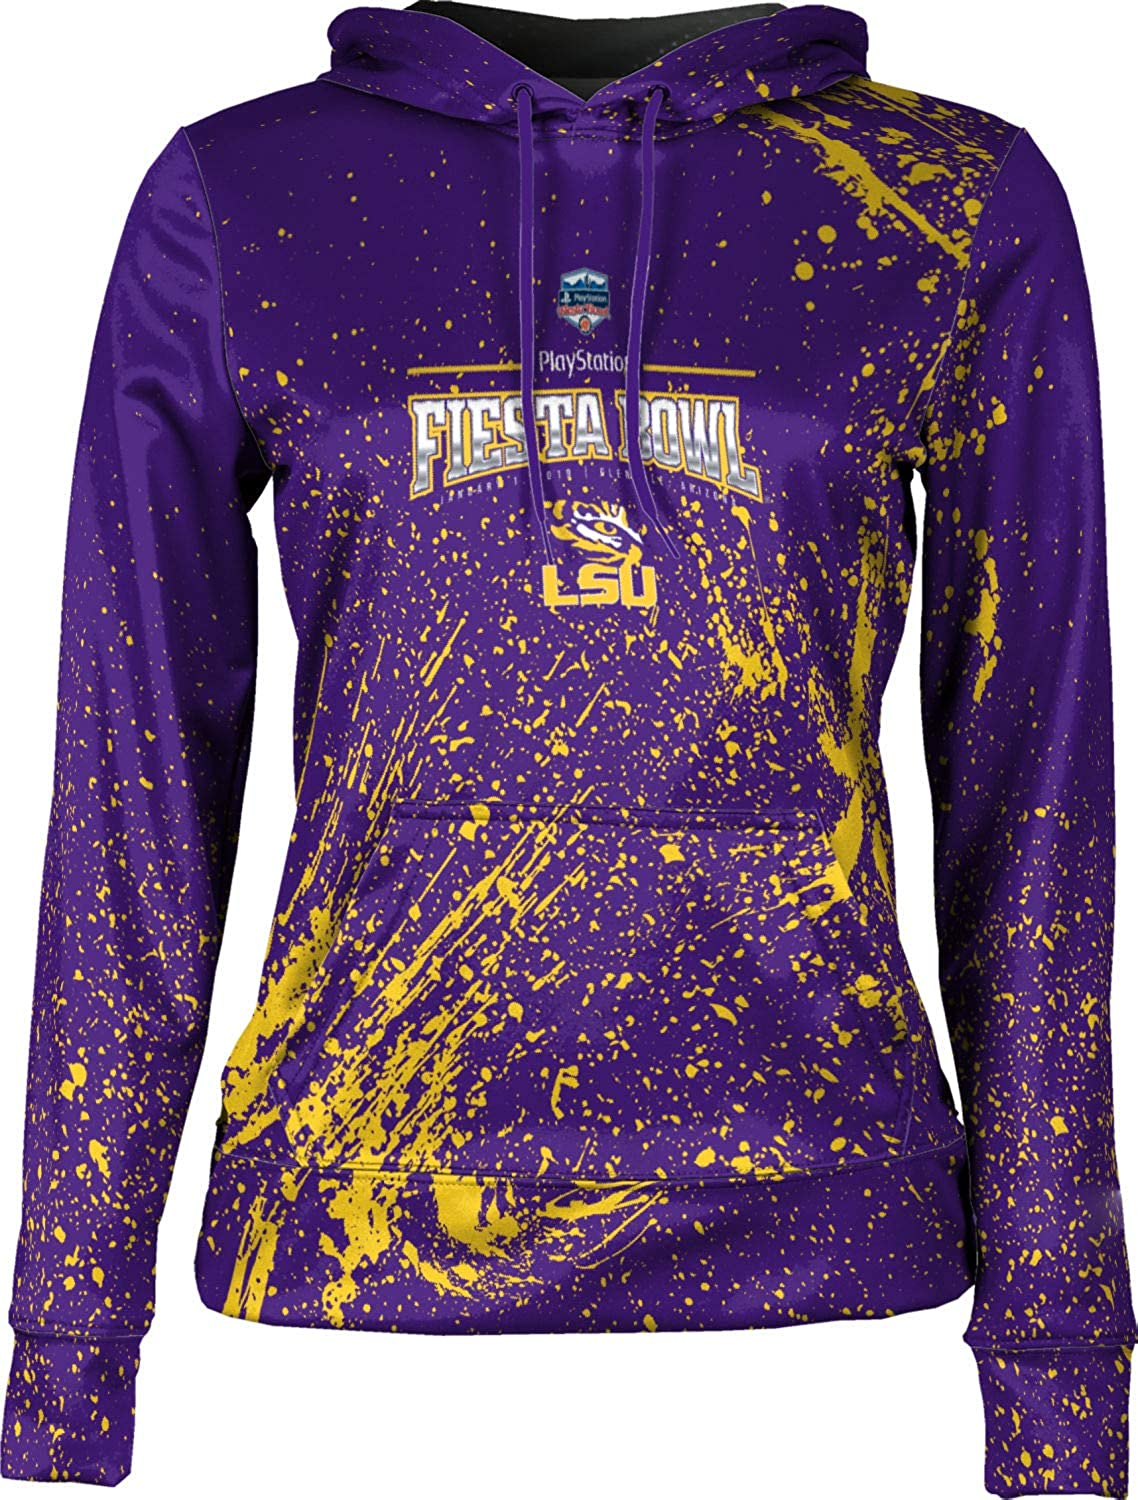 Fiesta Bowl 2019 Splatter School Spirit Sweatshirt LSU University Girls Pullover Hoodie